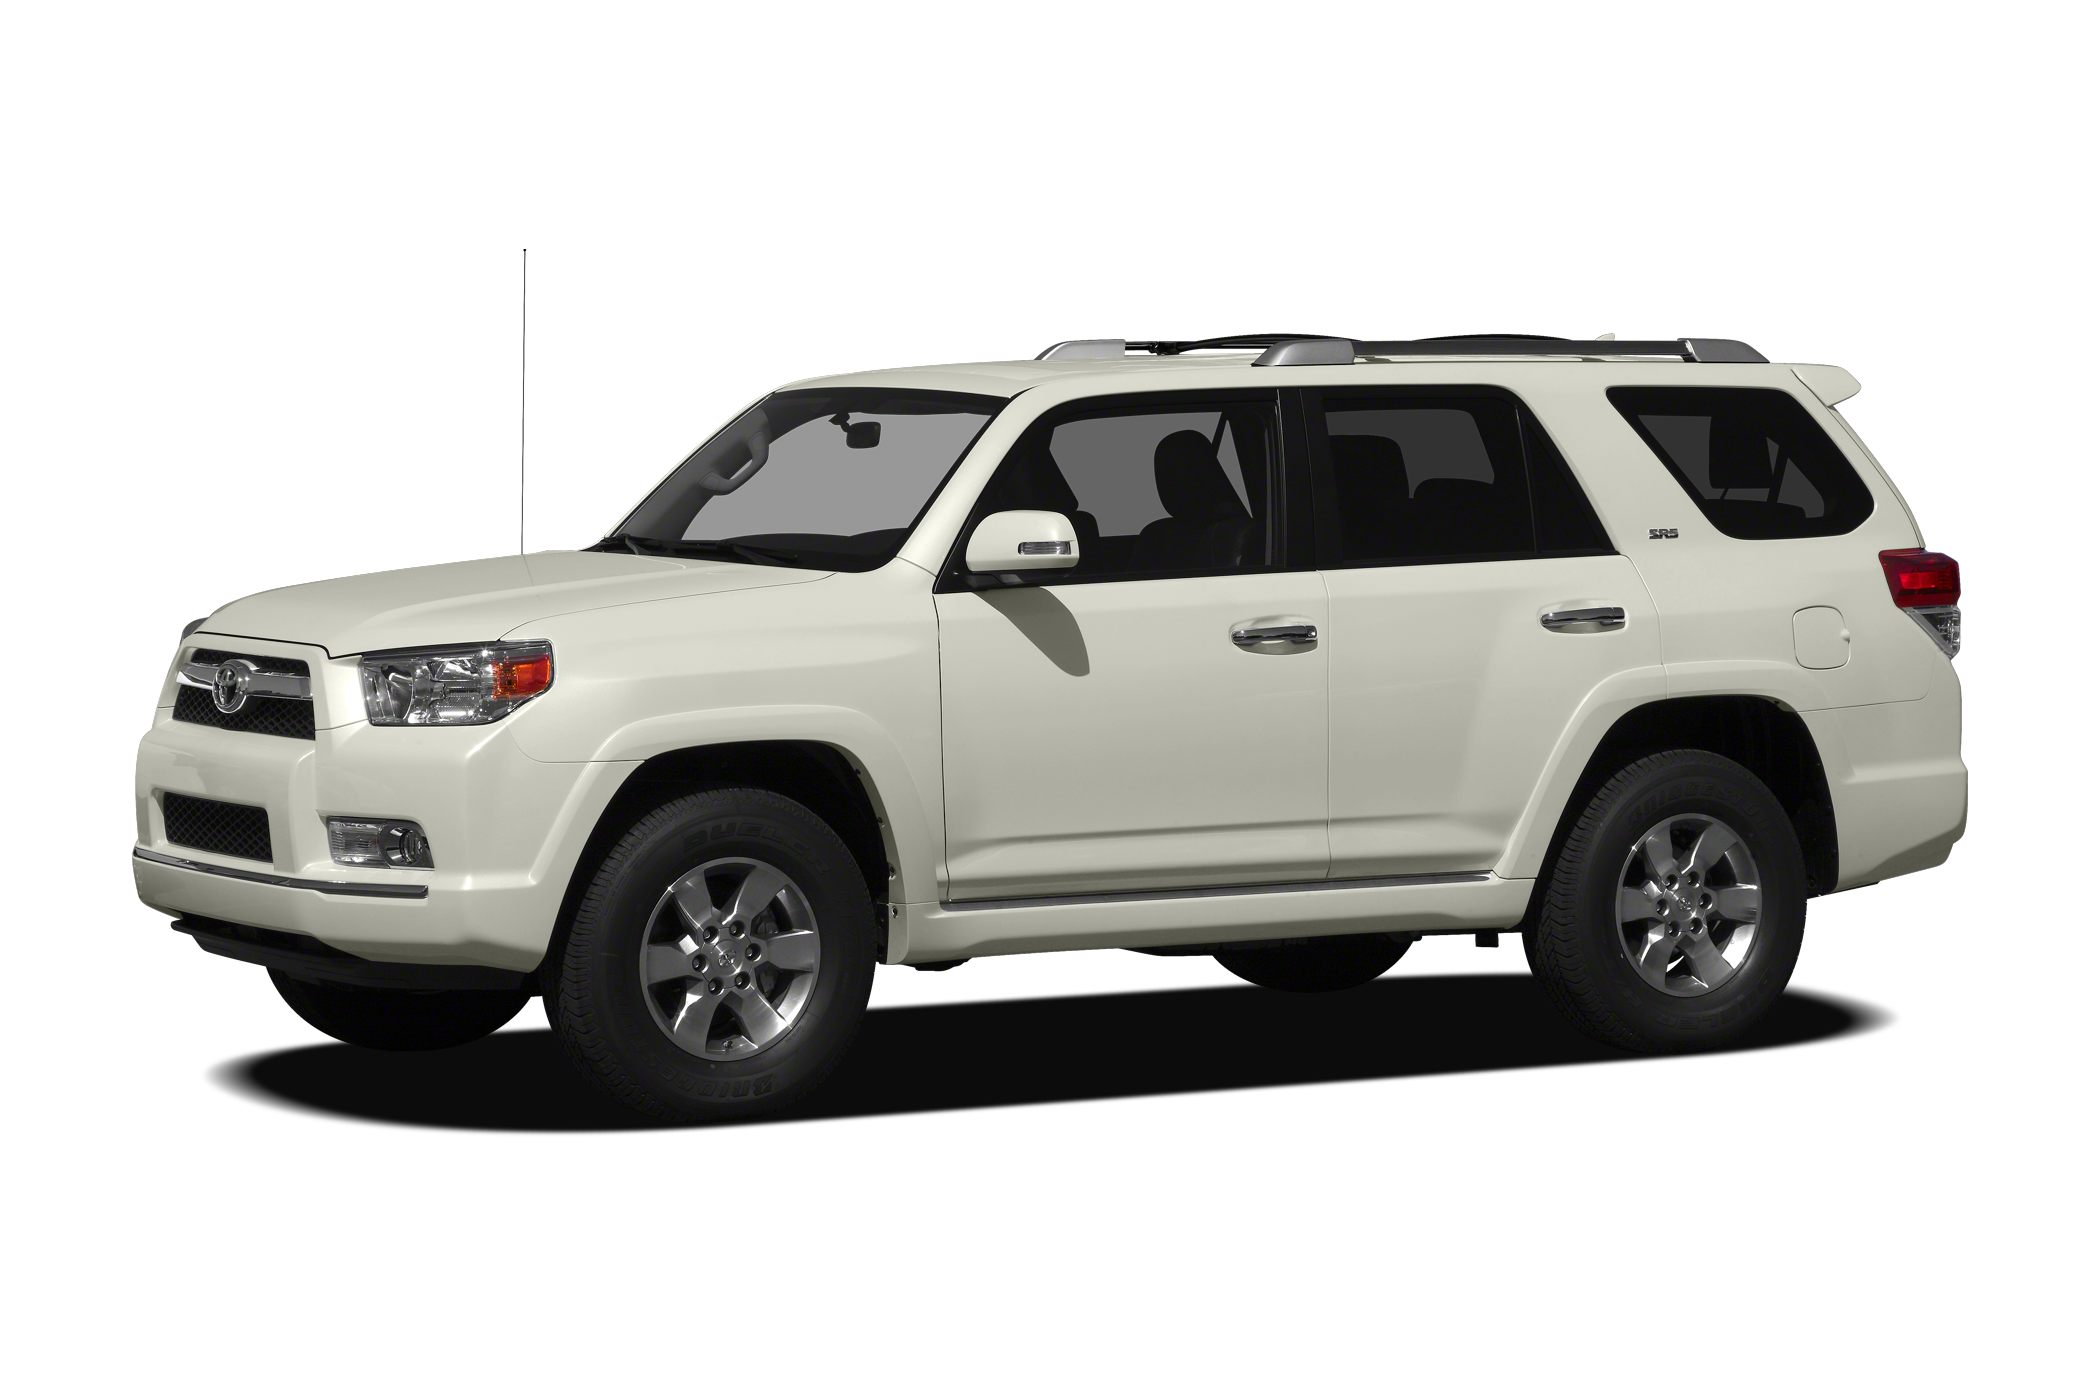 2012 Toyota 4Runner SR5 SUV for sale in Walla Walla for $32,933 with 31,306 miles